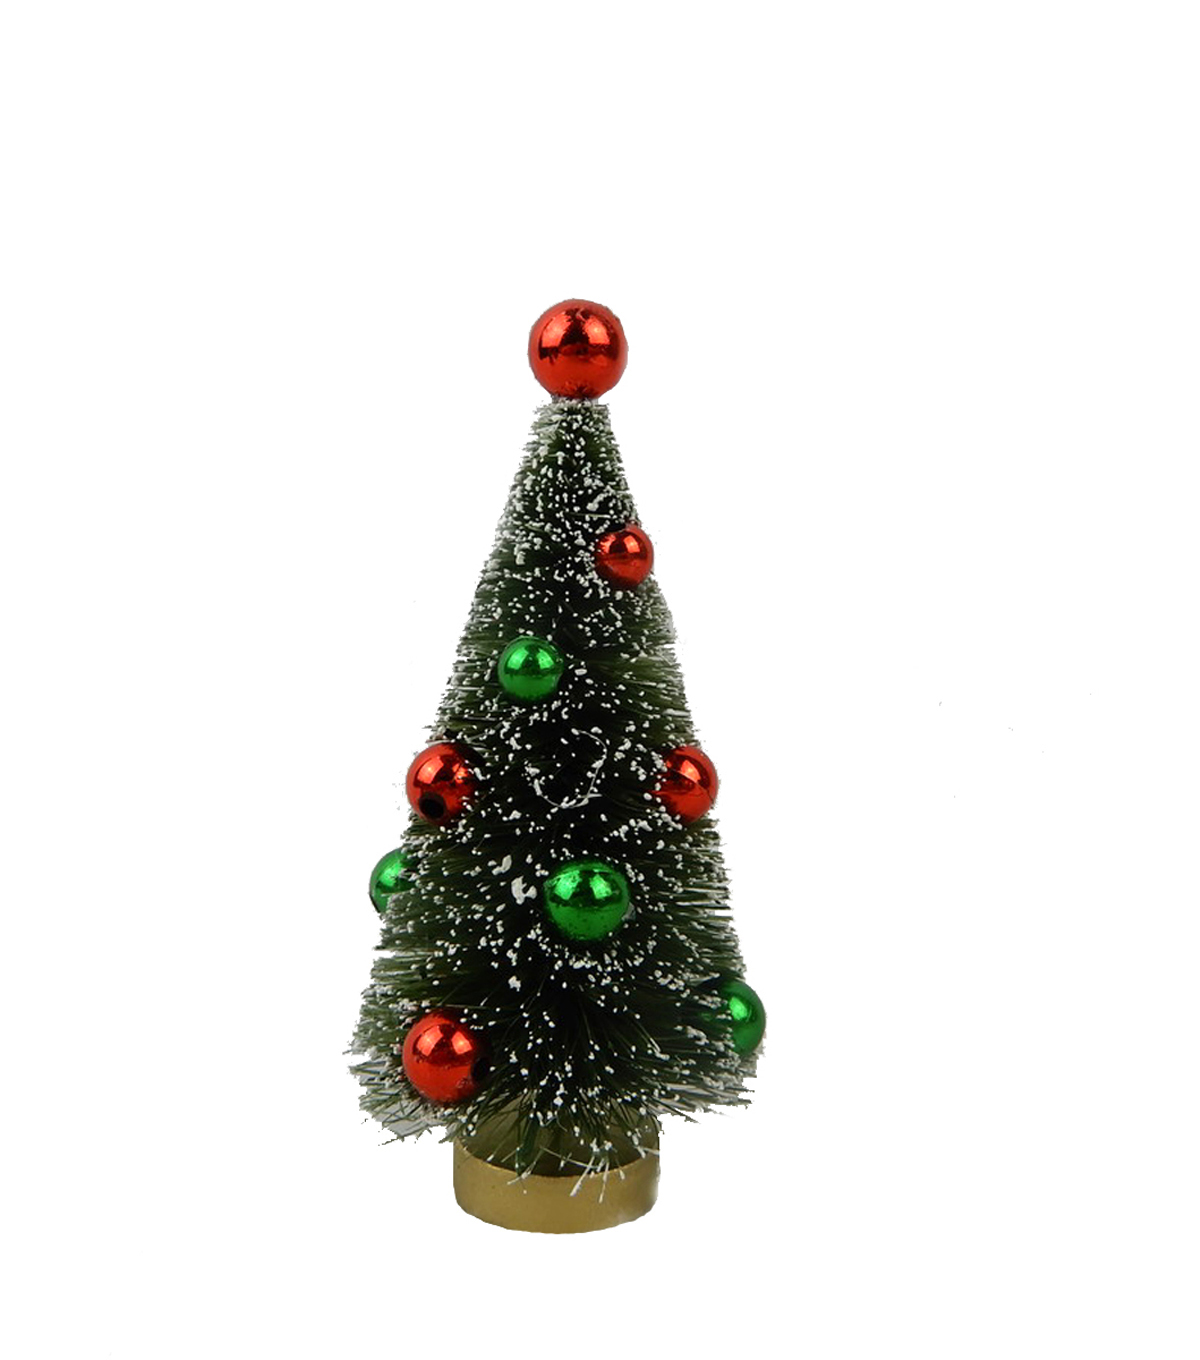 Handmade Holiday Christmas 4\u0027\u0027 Mini Tree with Red & Green Ornaments